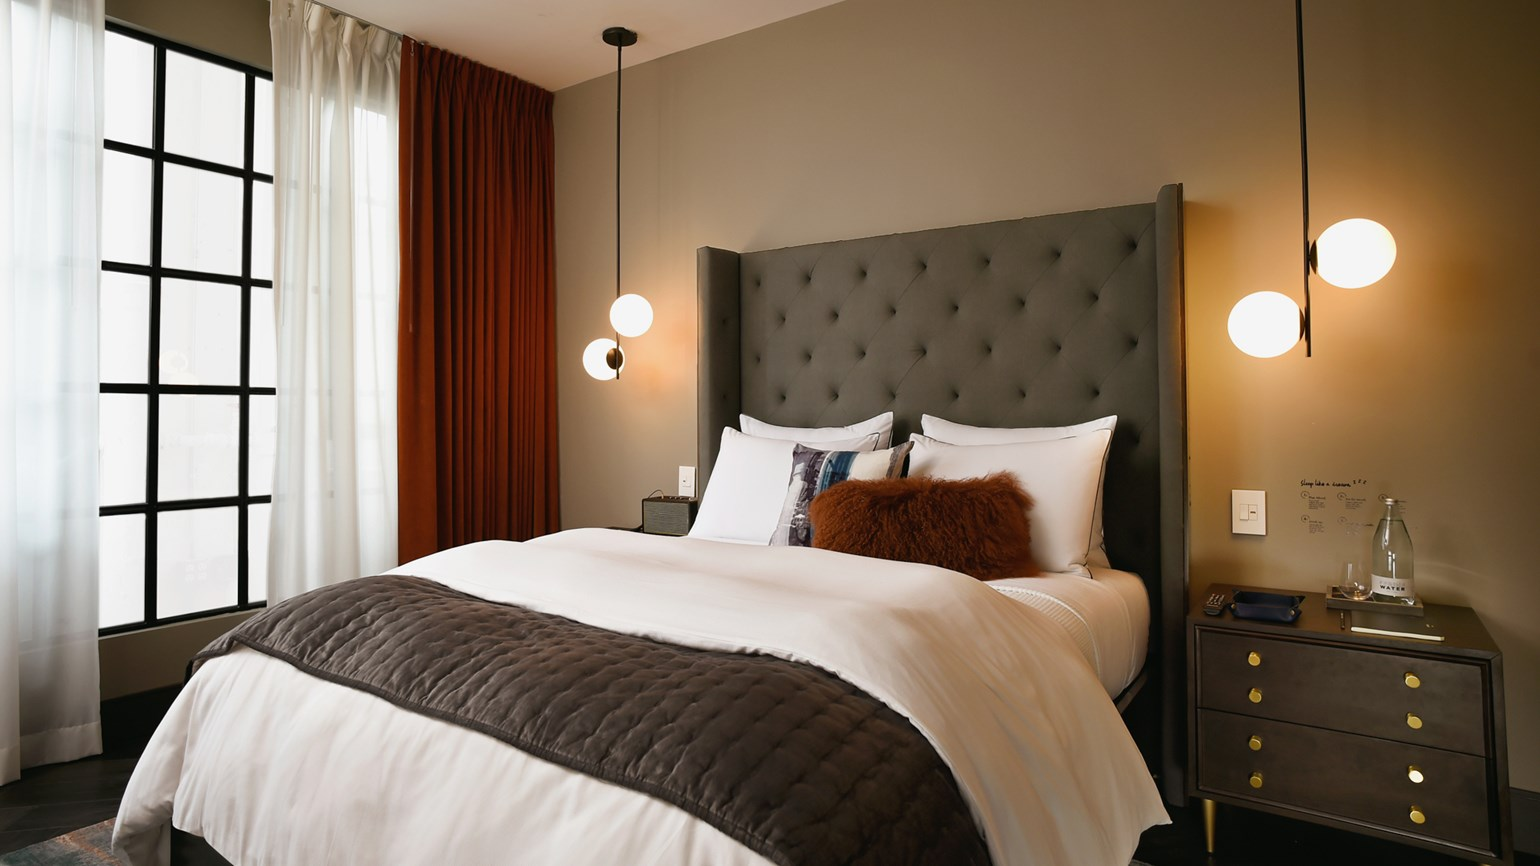 Home-design brand West Elm plans hotels in 5 cities